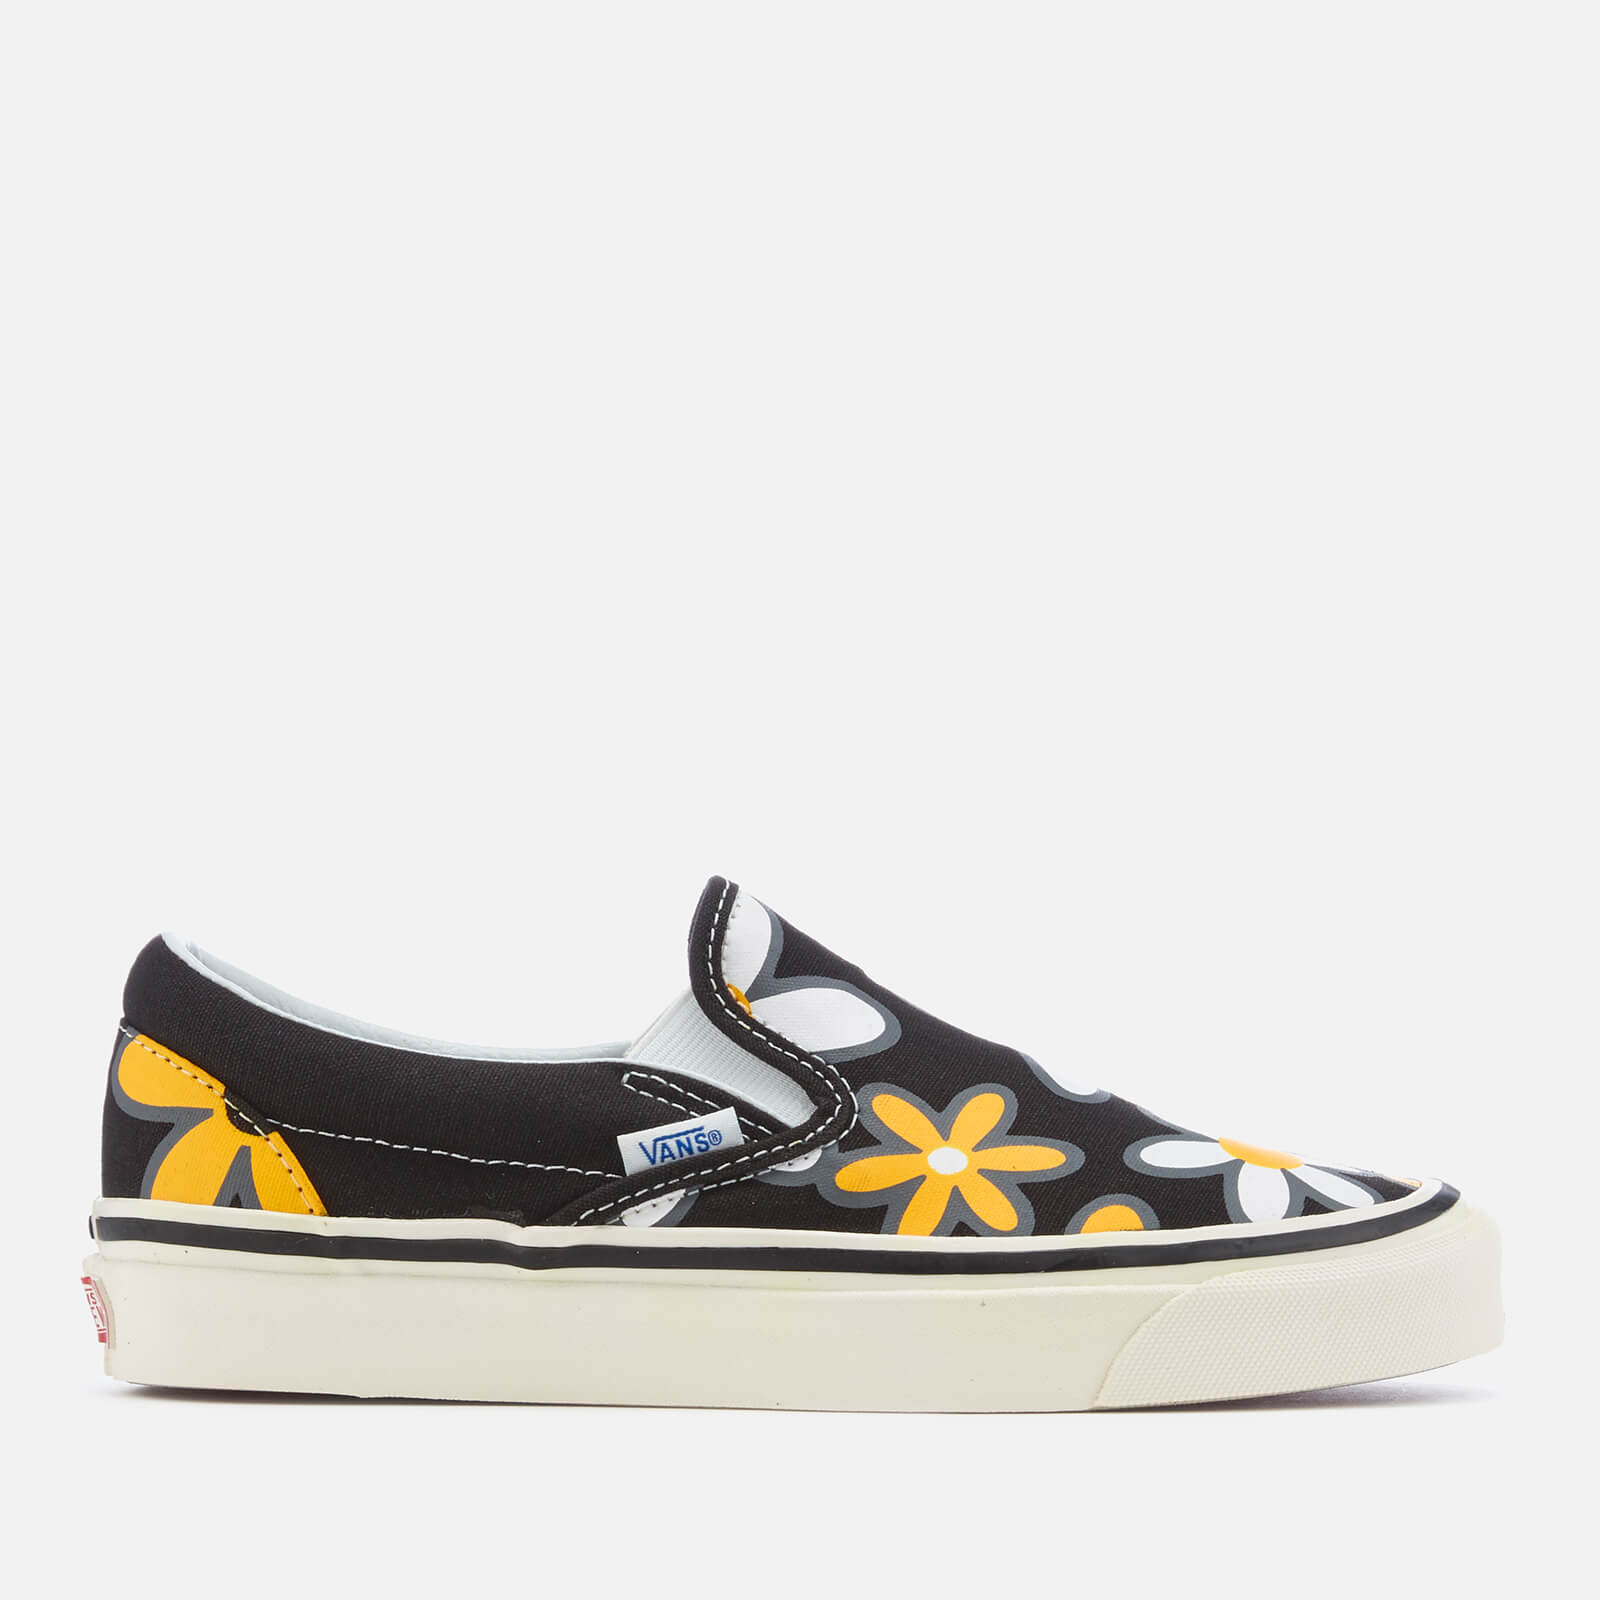 8f6f759ad931 Vans Women s Anaheim Classic 98 DX Slip-On Trainers - Black Flower Power -  Free UK Delivery over £50